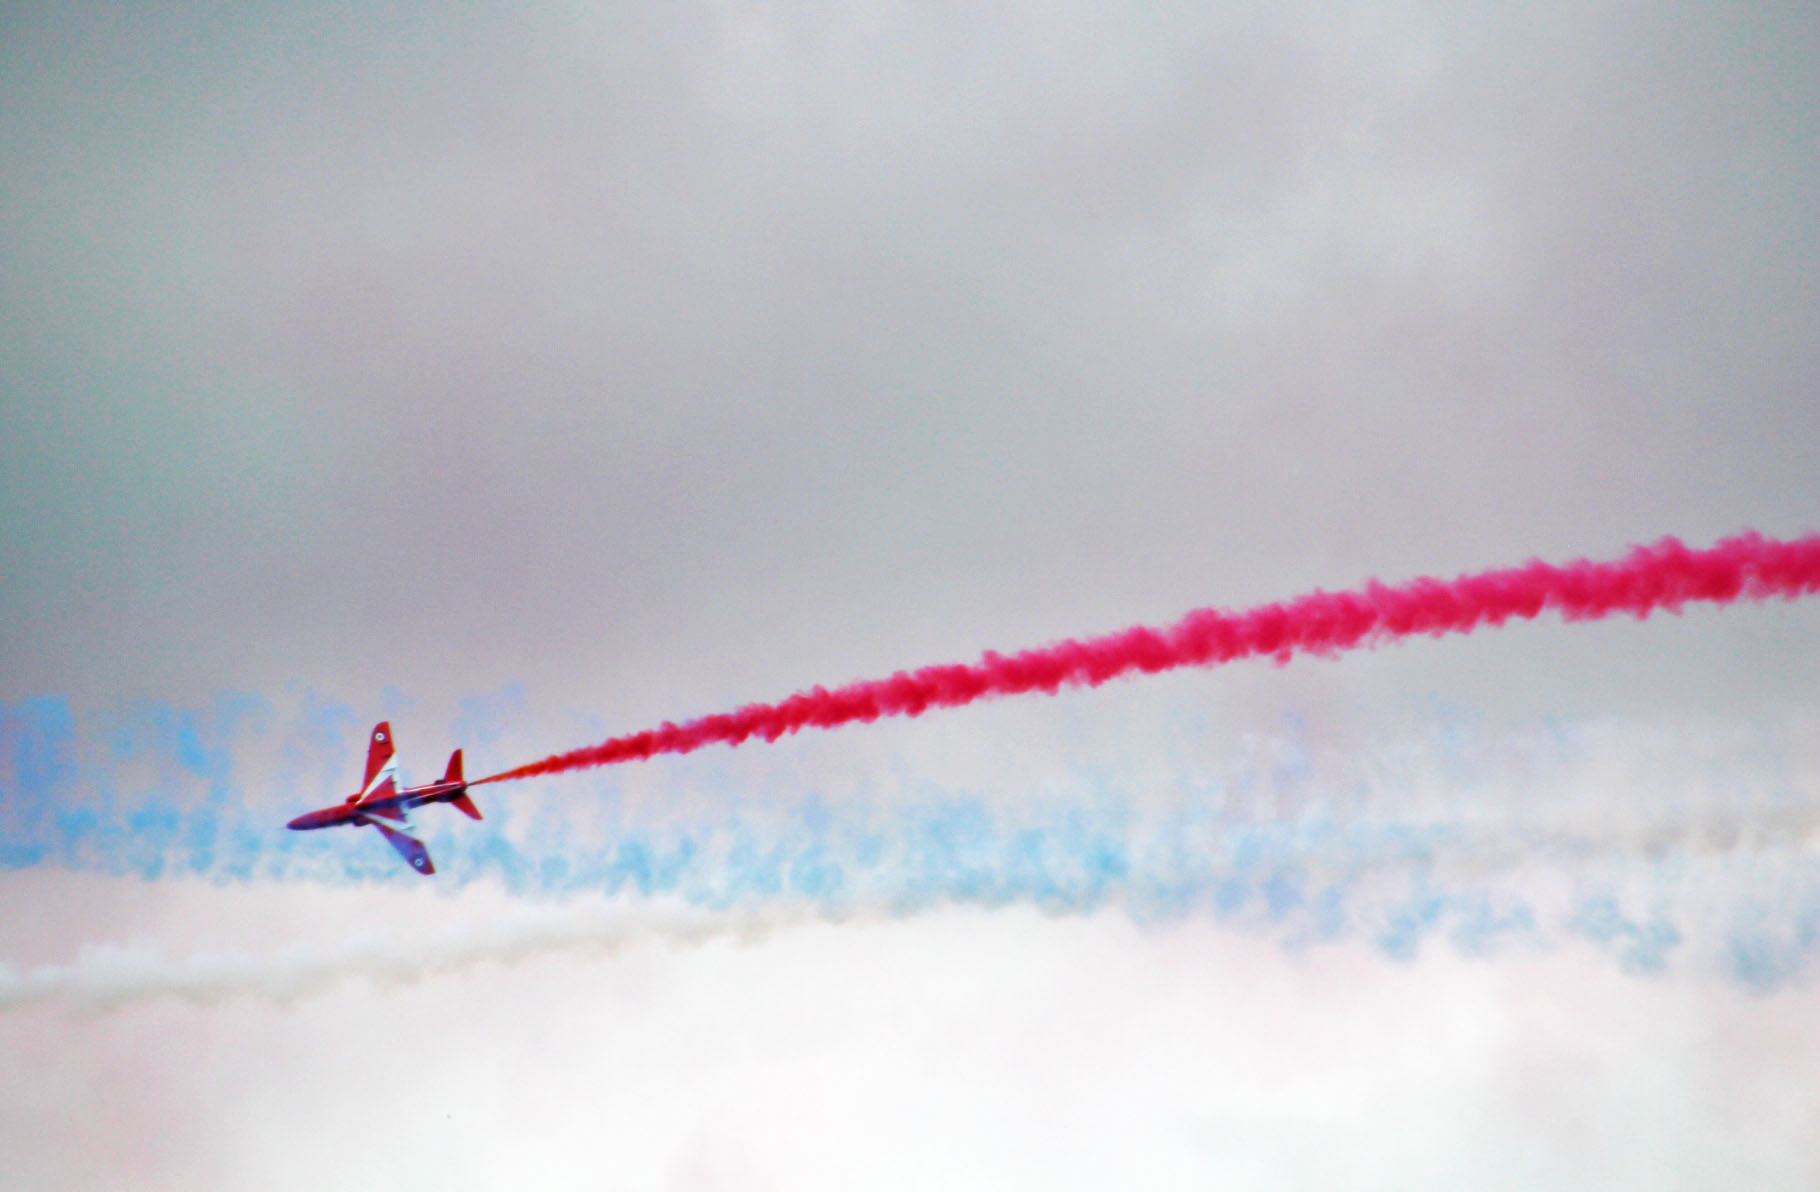 An impressive display from the Red Arrows